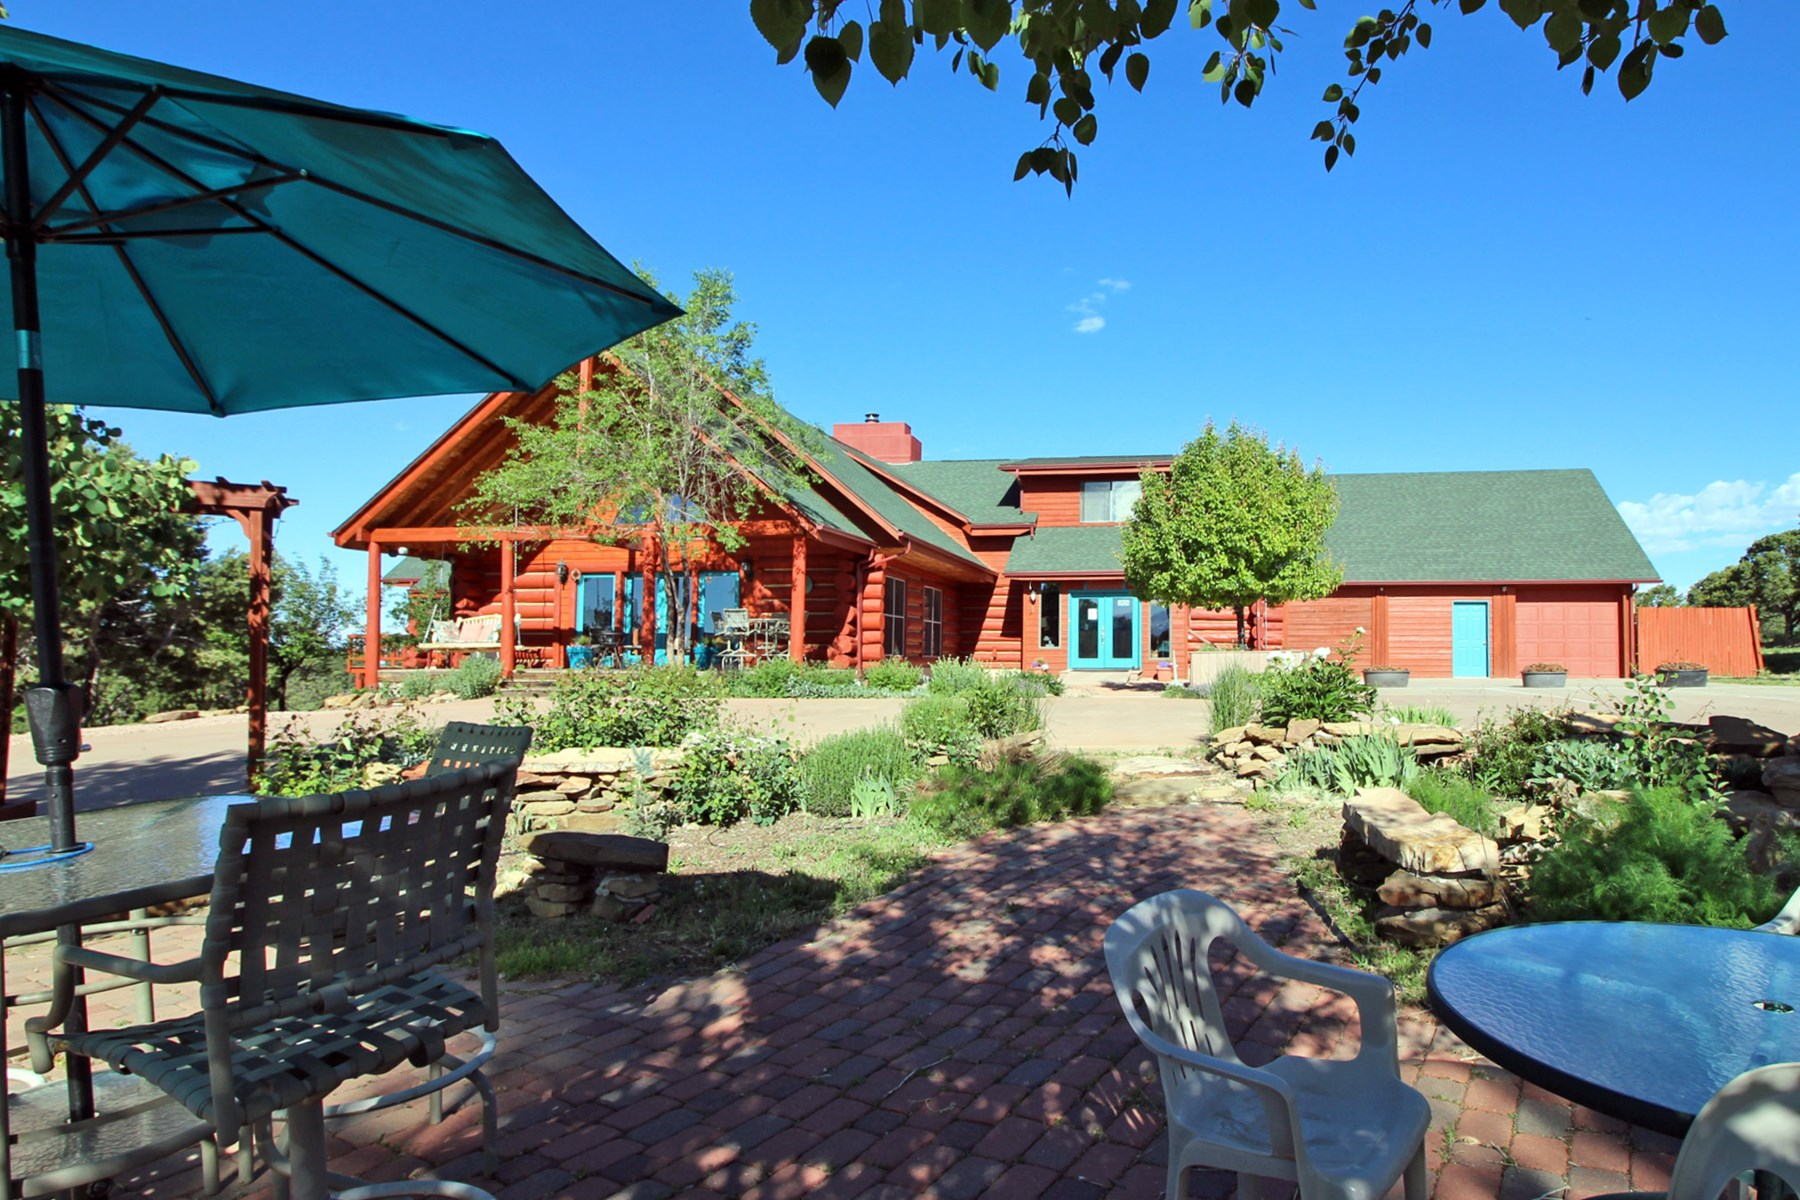 Amazing retreat or lodge facility on 29 acres in SW Colorado